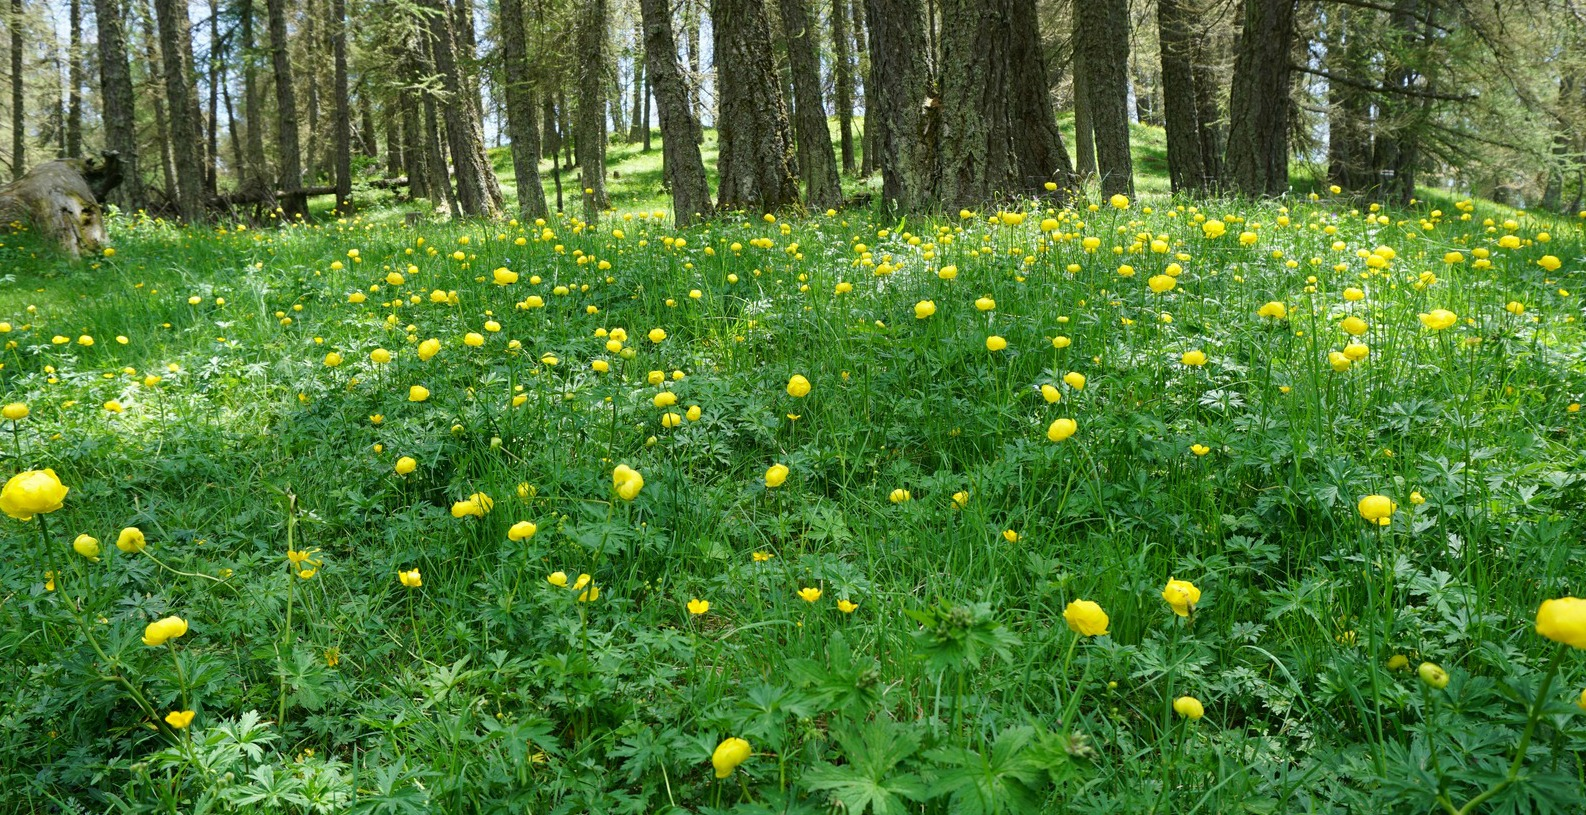 Globeflowers in blossom near Valberg